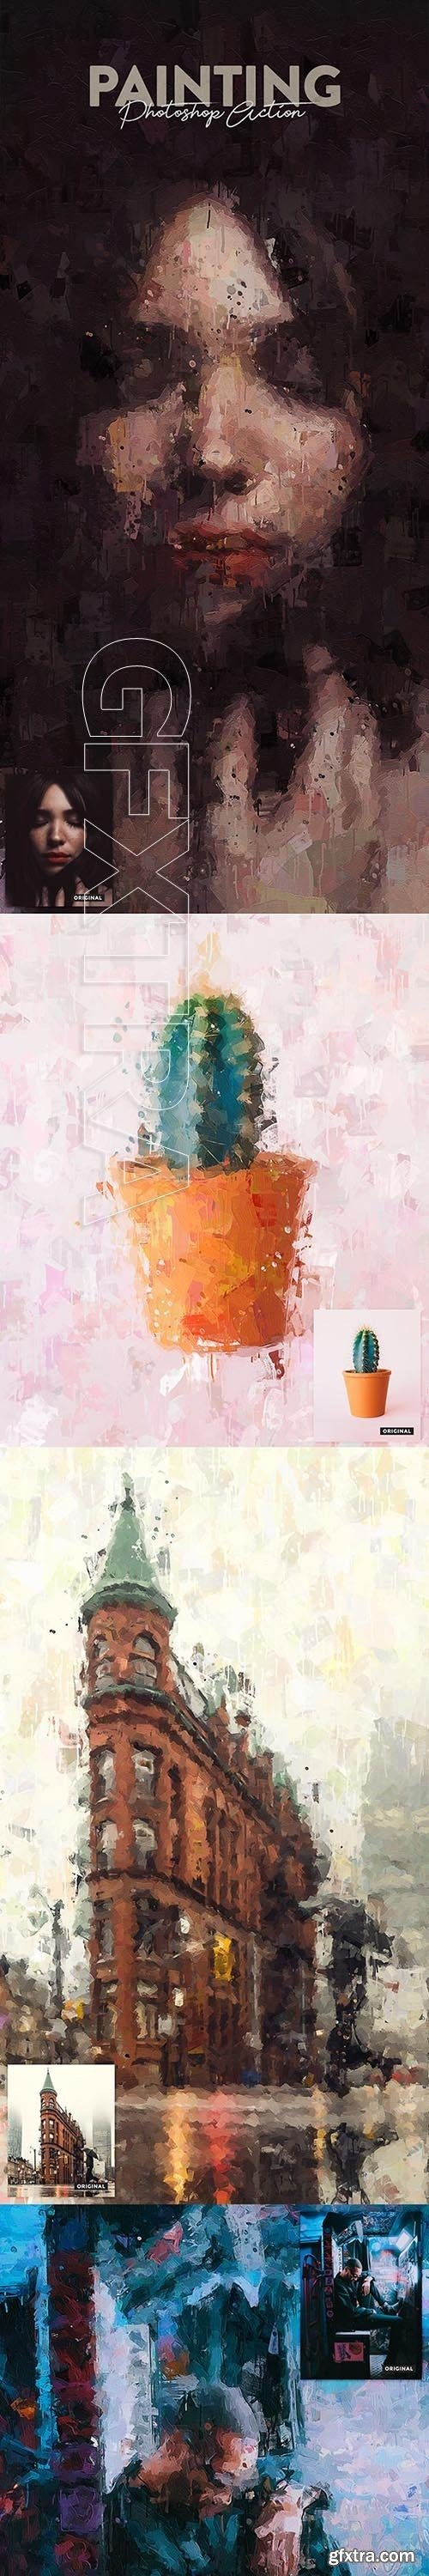 GraphicRiver - Painting Photoshop Action 22411018